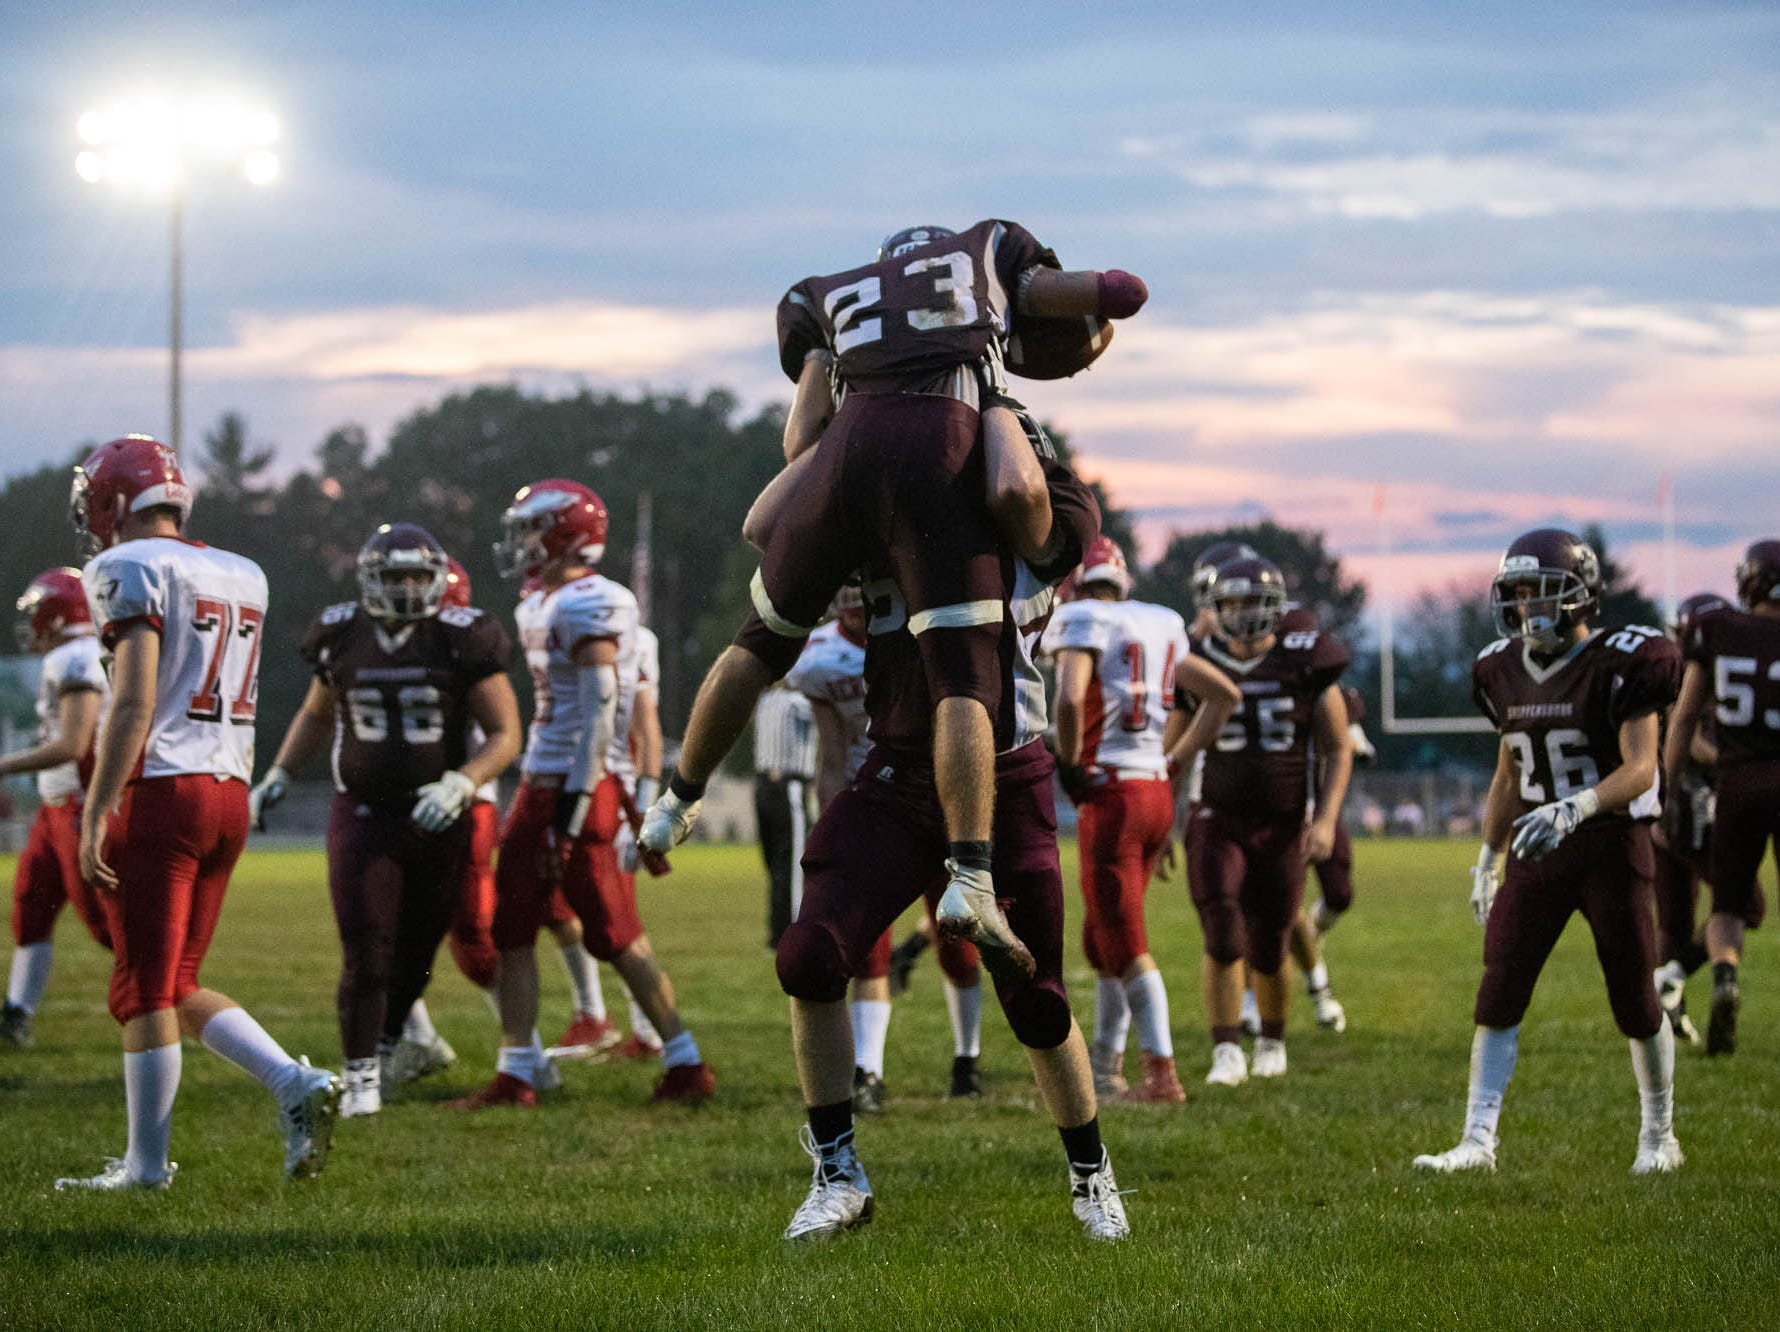 Shippensburg's Kyler Brown (23) is lifted into the air by Shippensburg's Wyatt Craig (52) after Brown scored a touchdown during a football game between Shippensburg and Bermudian Springs, Friday, Sept. 7, 2018, at Shippensburg High School.